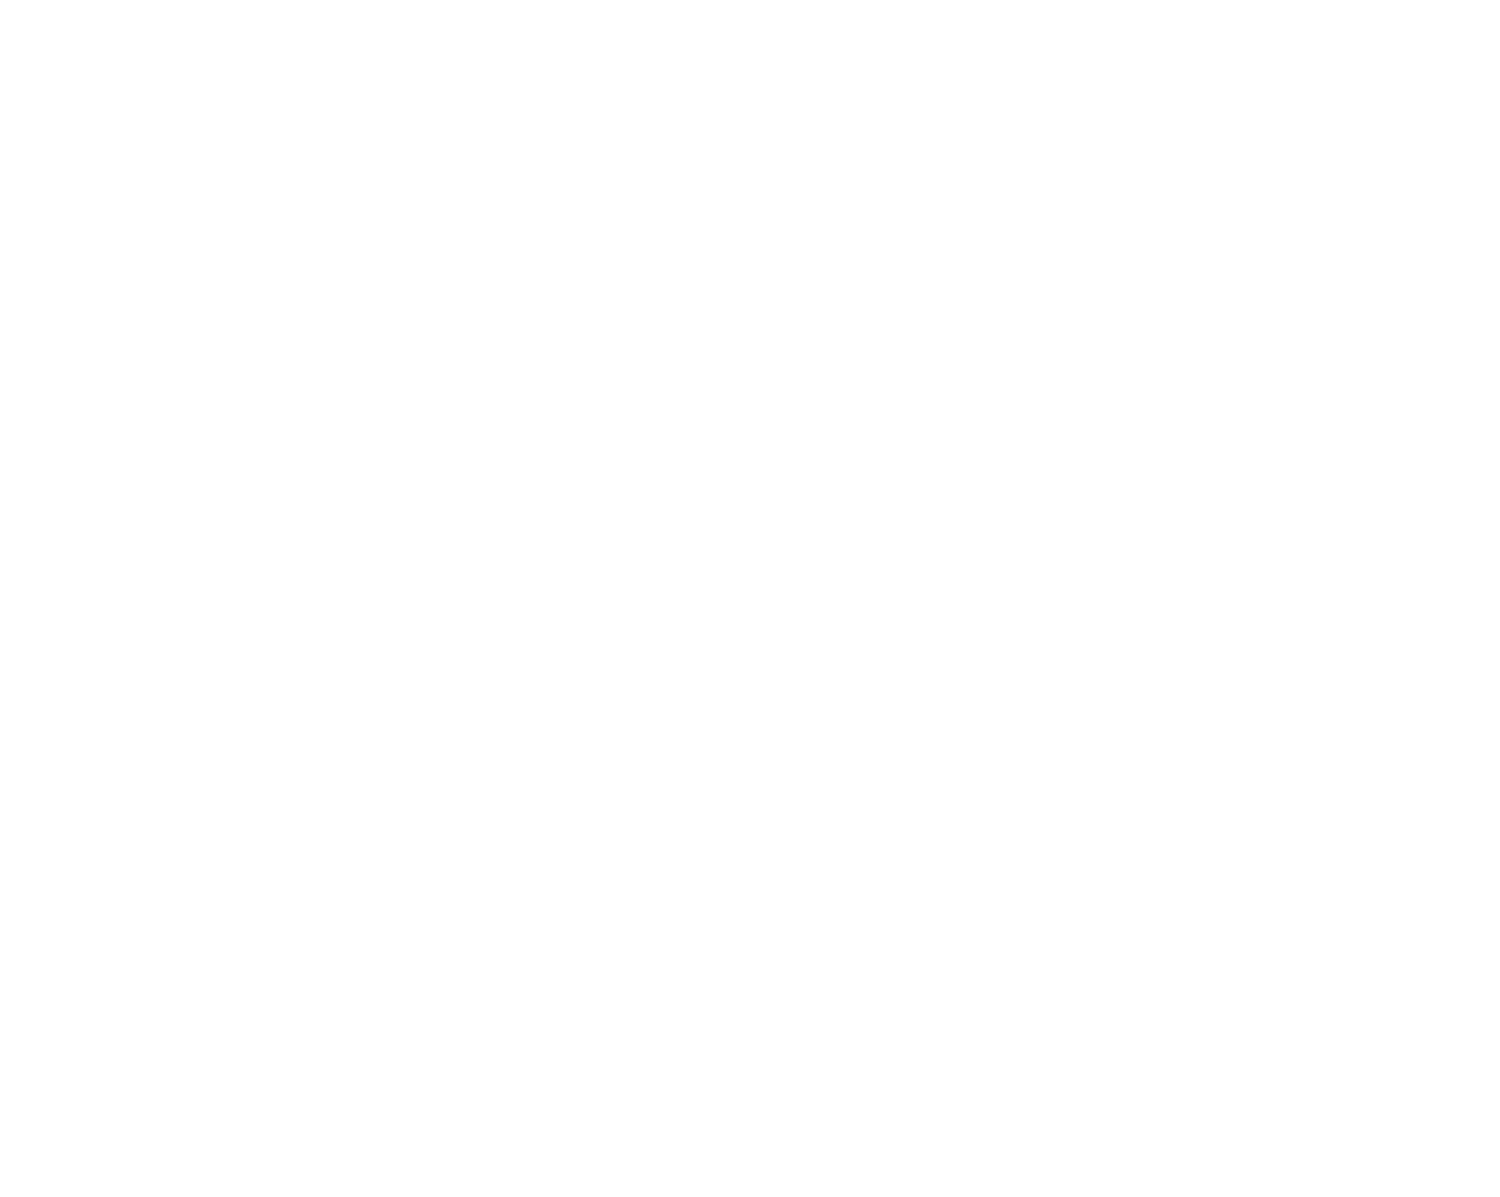 The Man Cave Broadway